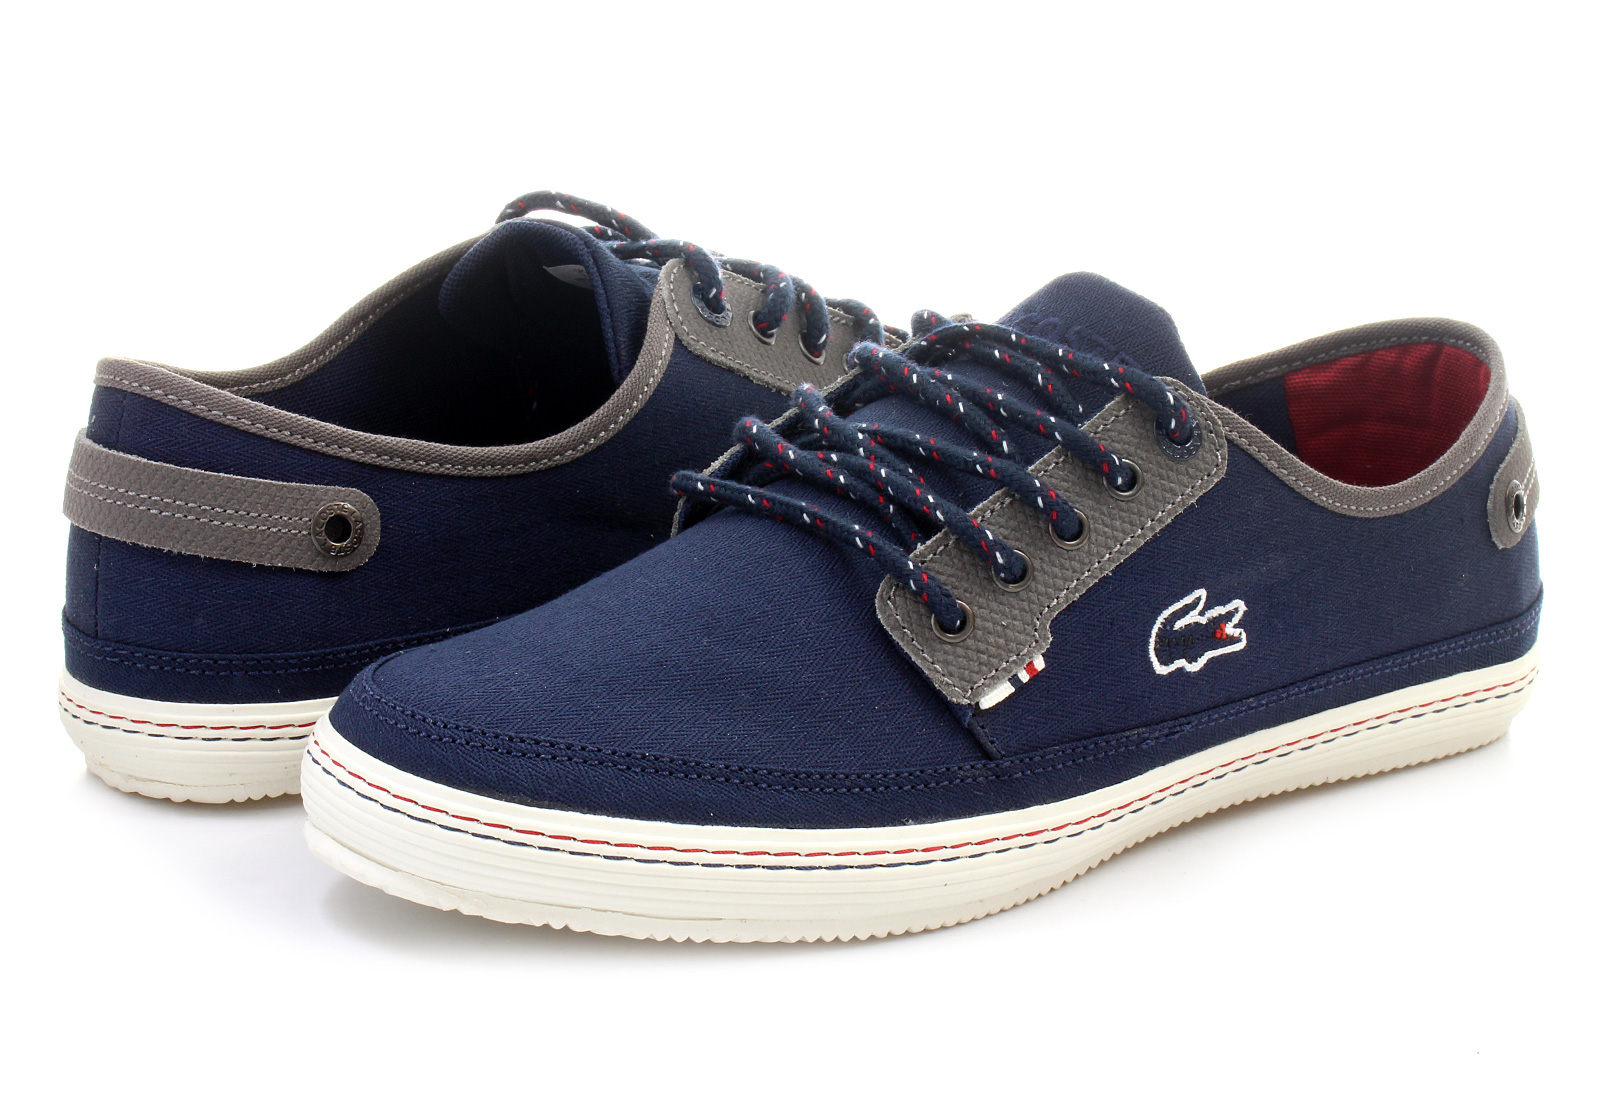 What Is A Size  In Lacoste Shoes